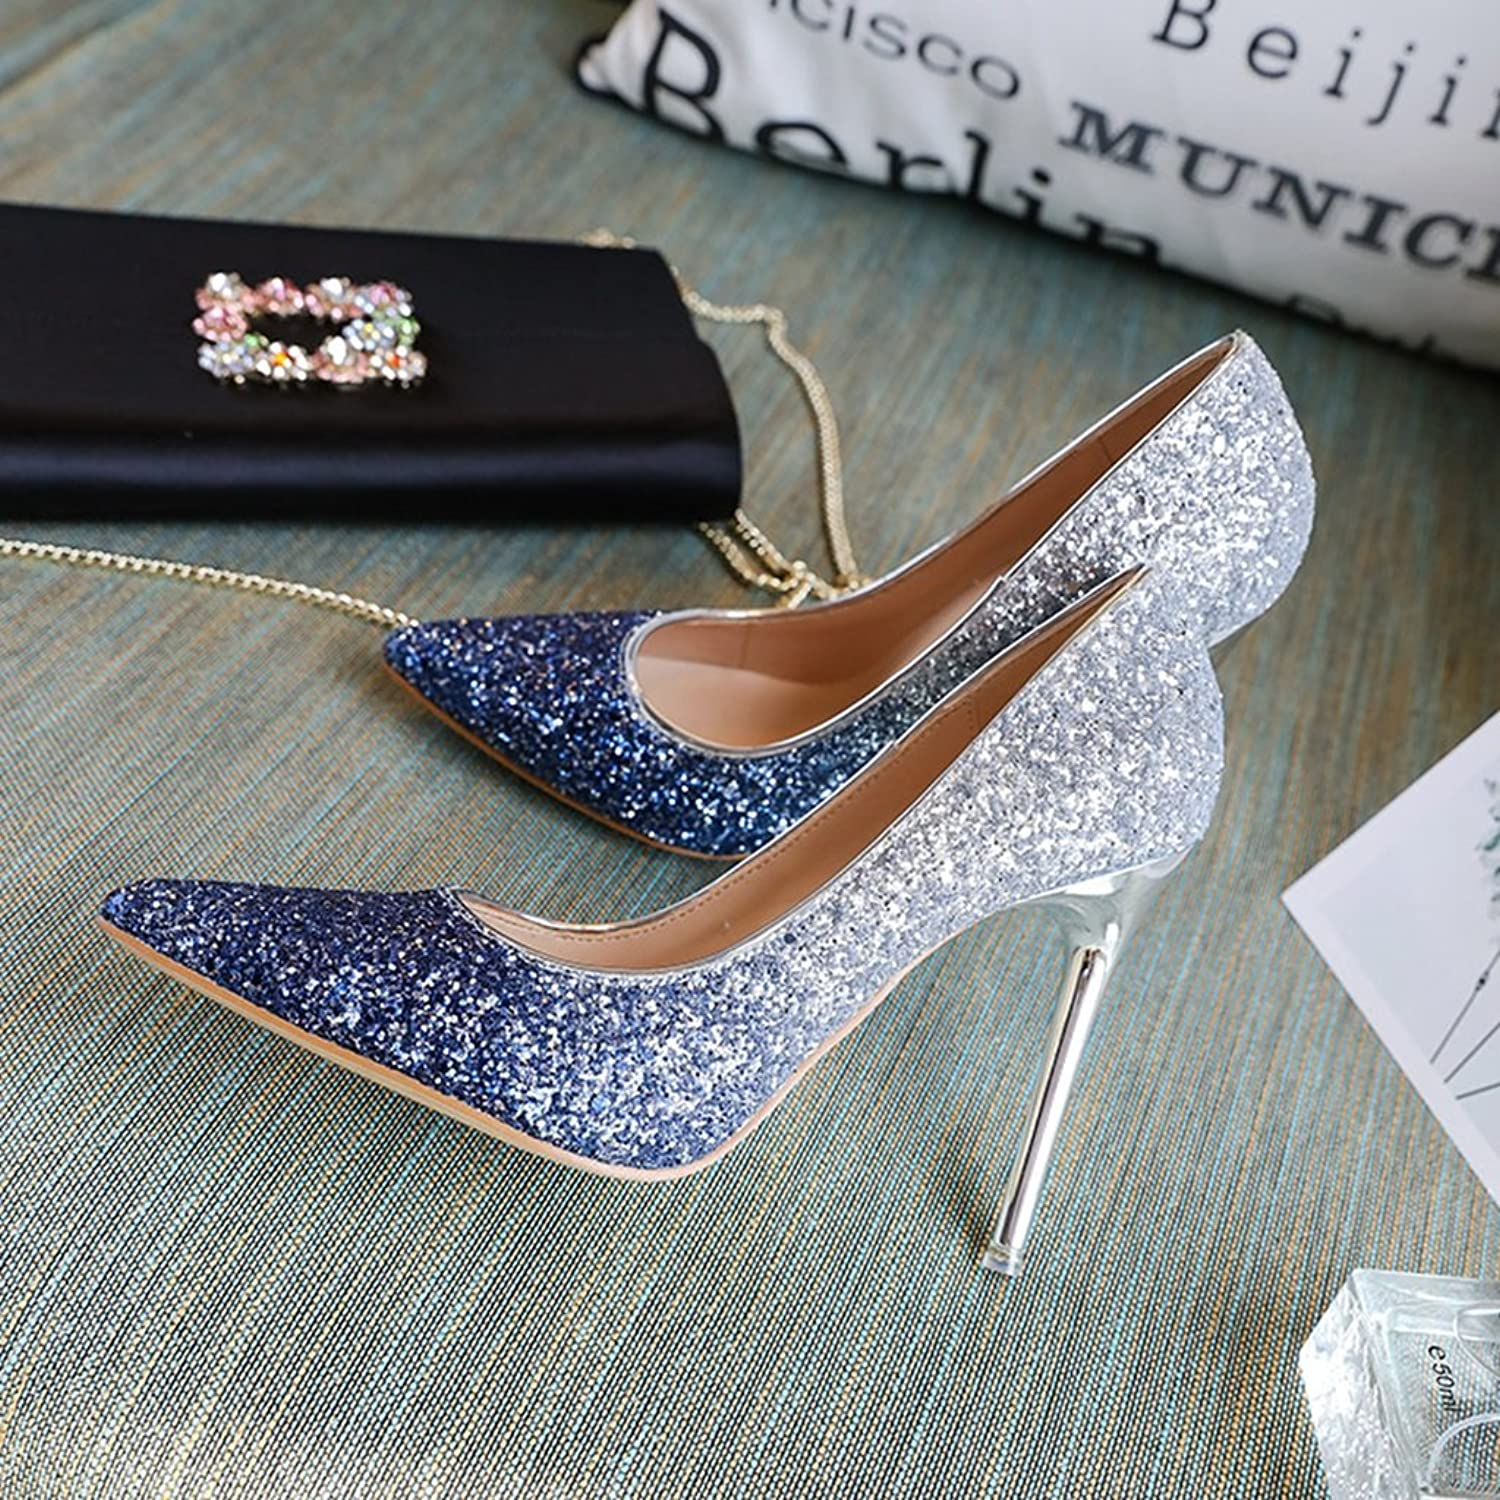 Female Summer tip high Heels high shoes Crystal Wedding shoes Bridesmaid Bride shoes Work shoes Shopping shoes (color   bluee, Size   35)